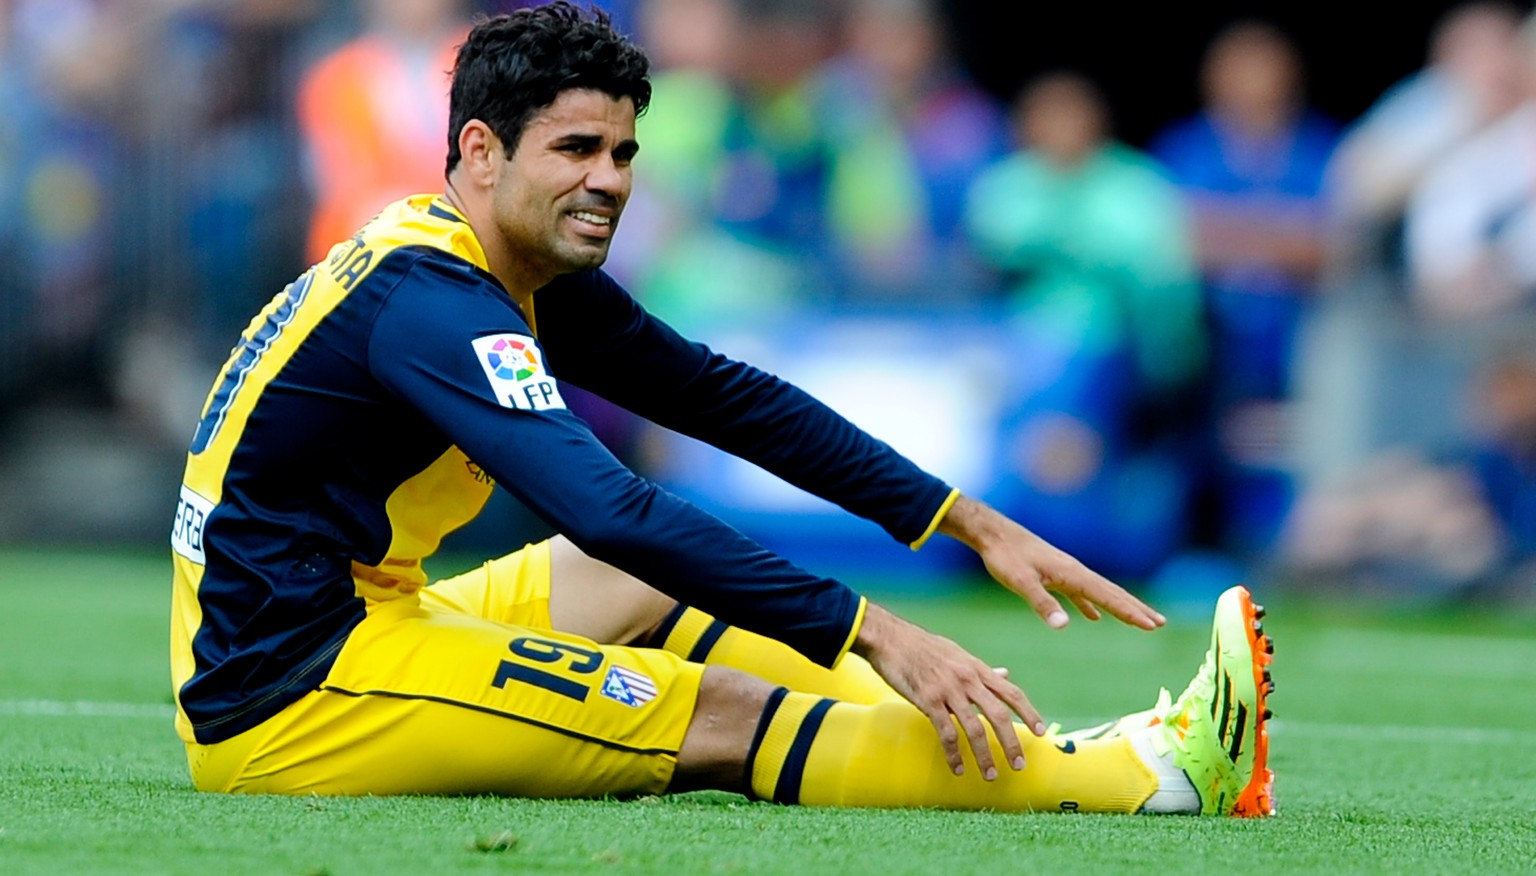 BARCELONA, SPAIN - MAY 17:  Diego Costa of Atletico de Madrid sits injured on th pitch during the La Liga match between FC Barcelona and Club Atletico de Madrid at Camp Nou on May 17, 2014 in Barcelona, Spain.  (Photo by David Ramos/Getty Images)